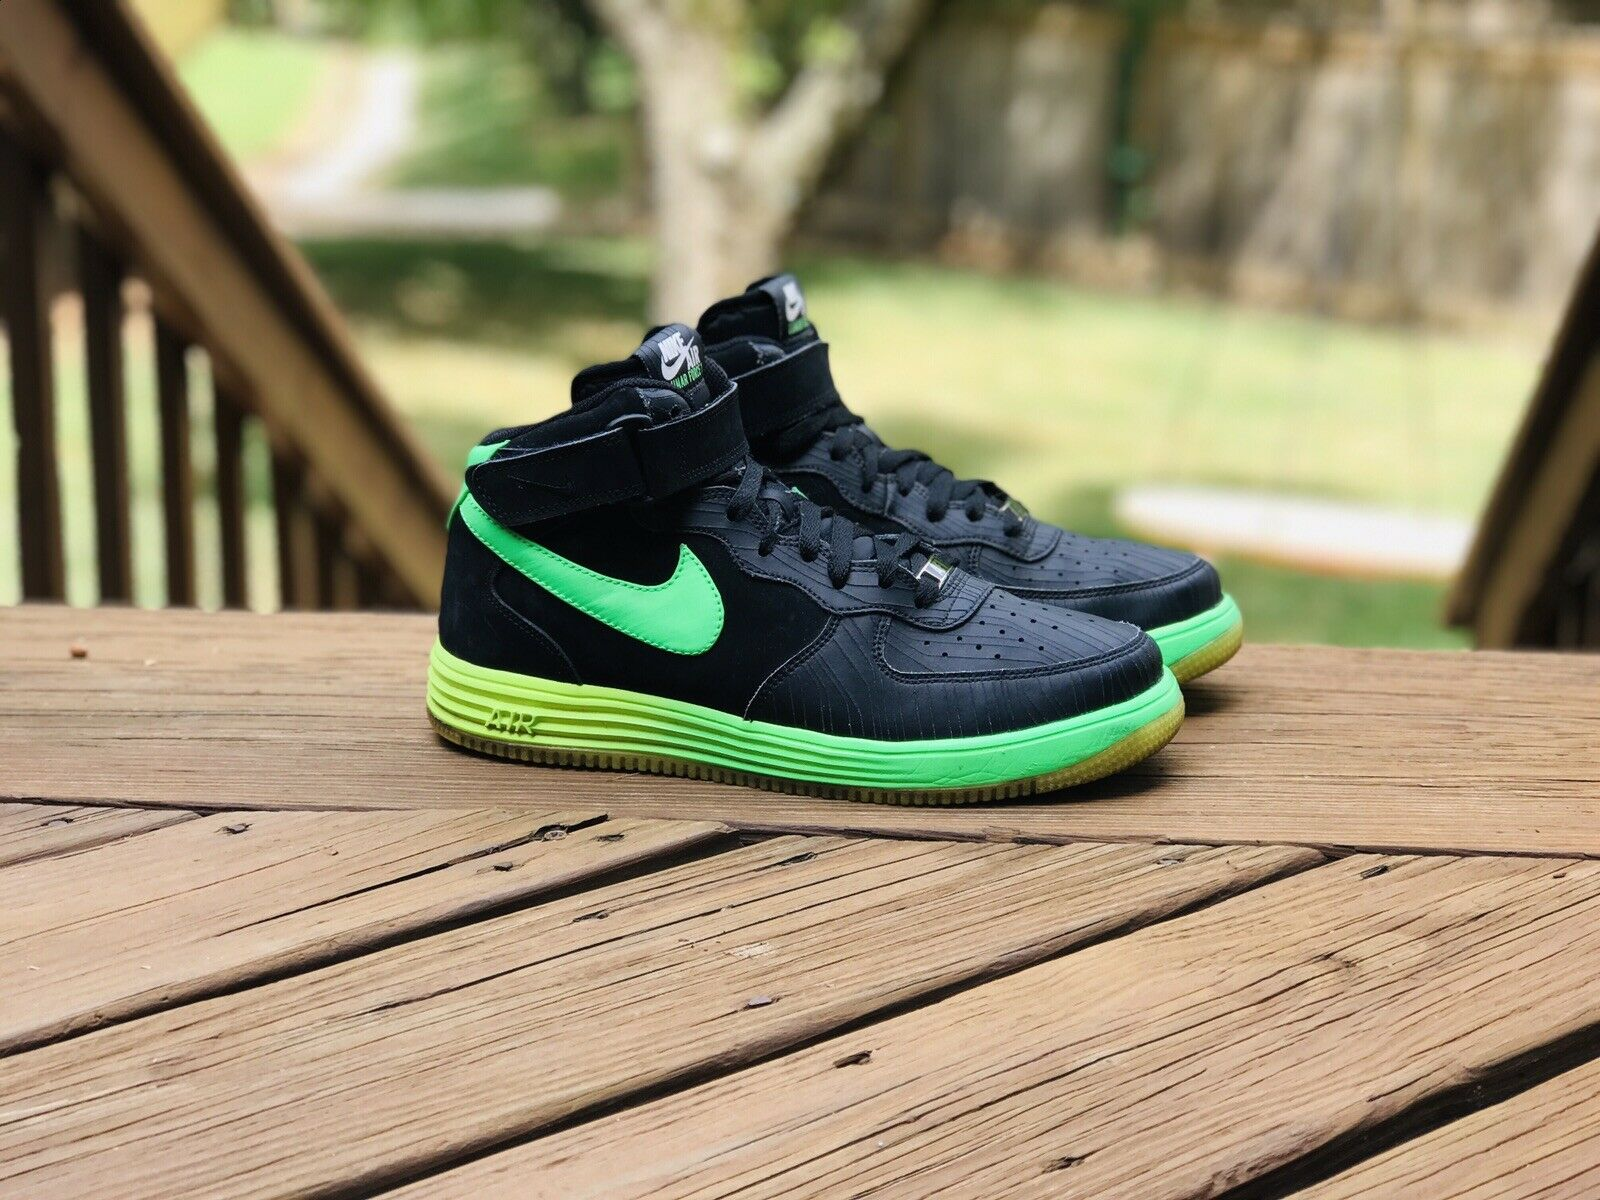 Nike Air Lunar Force 1 Mid LTR Glow BlackPoison Green Volt Shoes Size 10